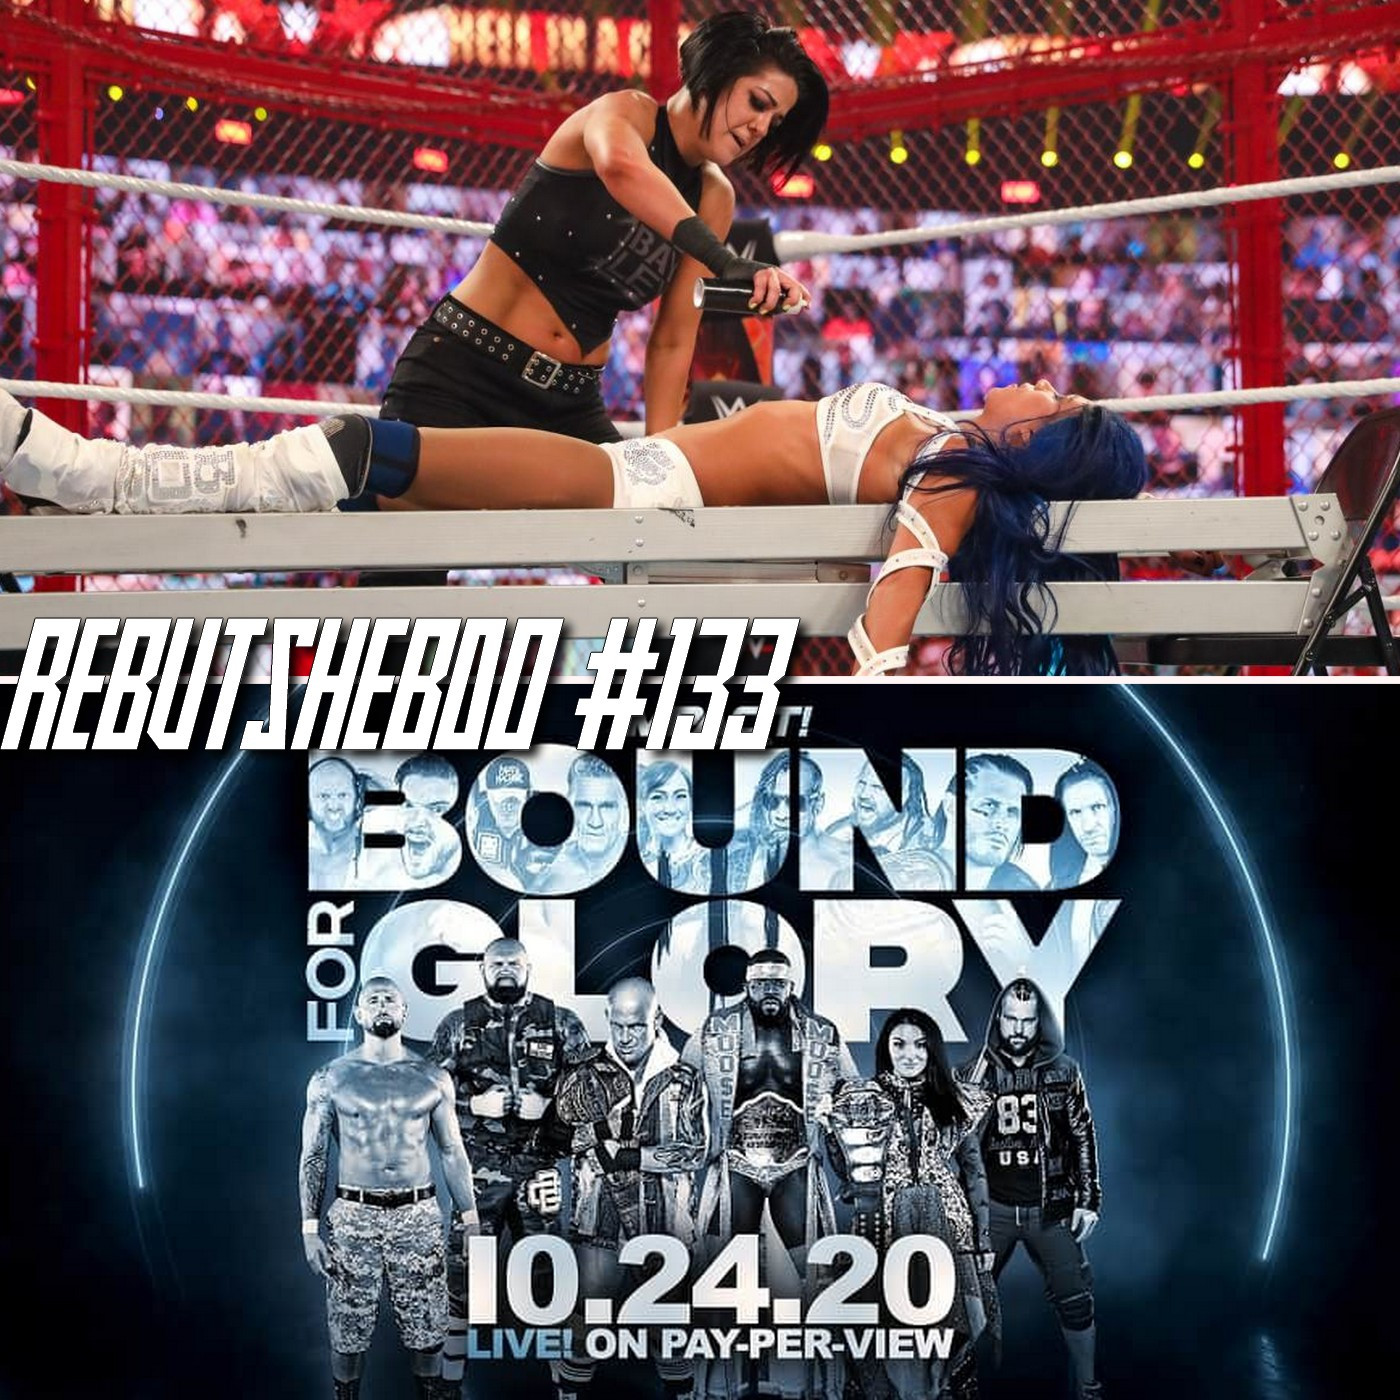 Les Rebuts du Catch : L'Hebdo #133 : Review WWE HELL IN A CELL + IMPACT BOUND FOR GLORY